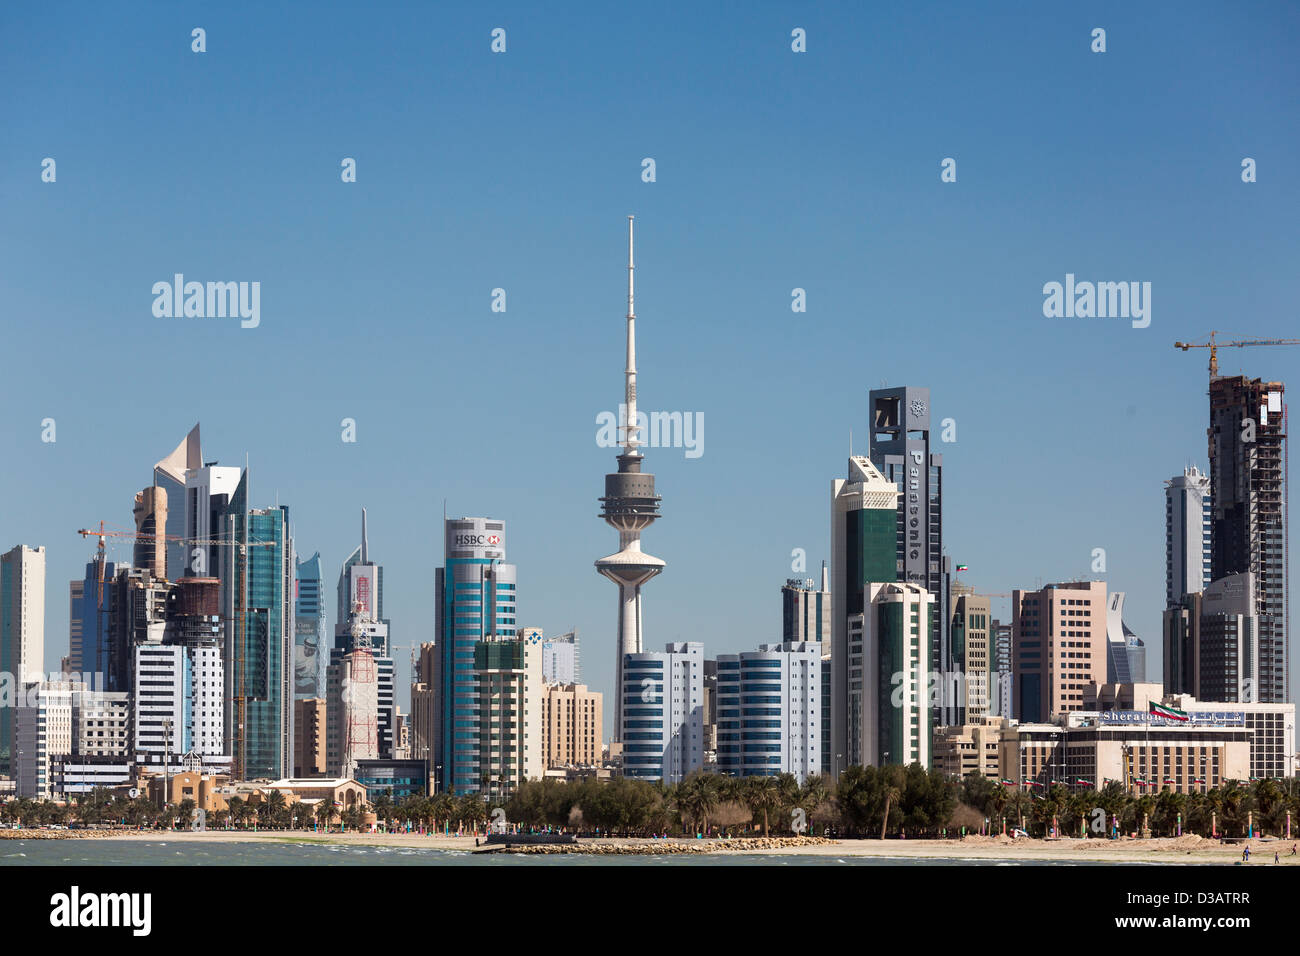 view of skyscrapers, Kuwait city, Kuwait - Stock Image